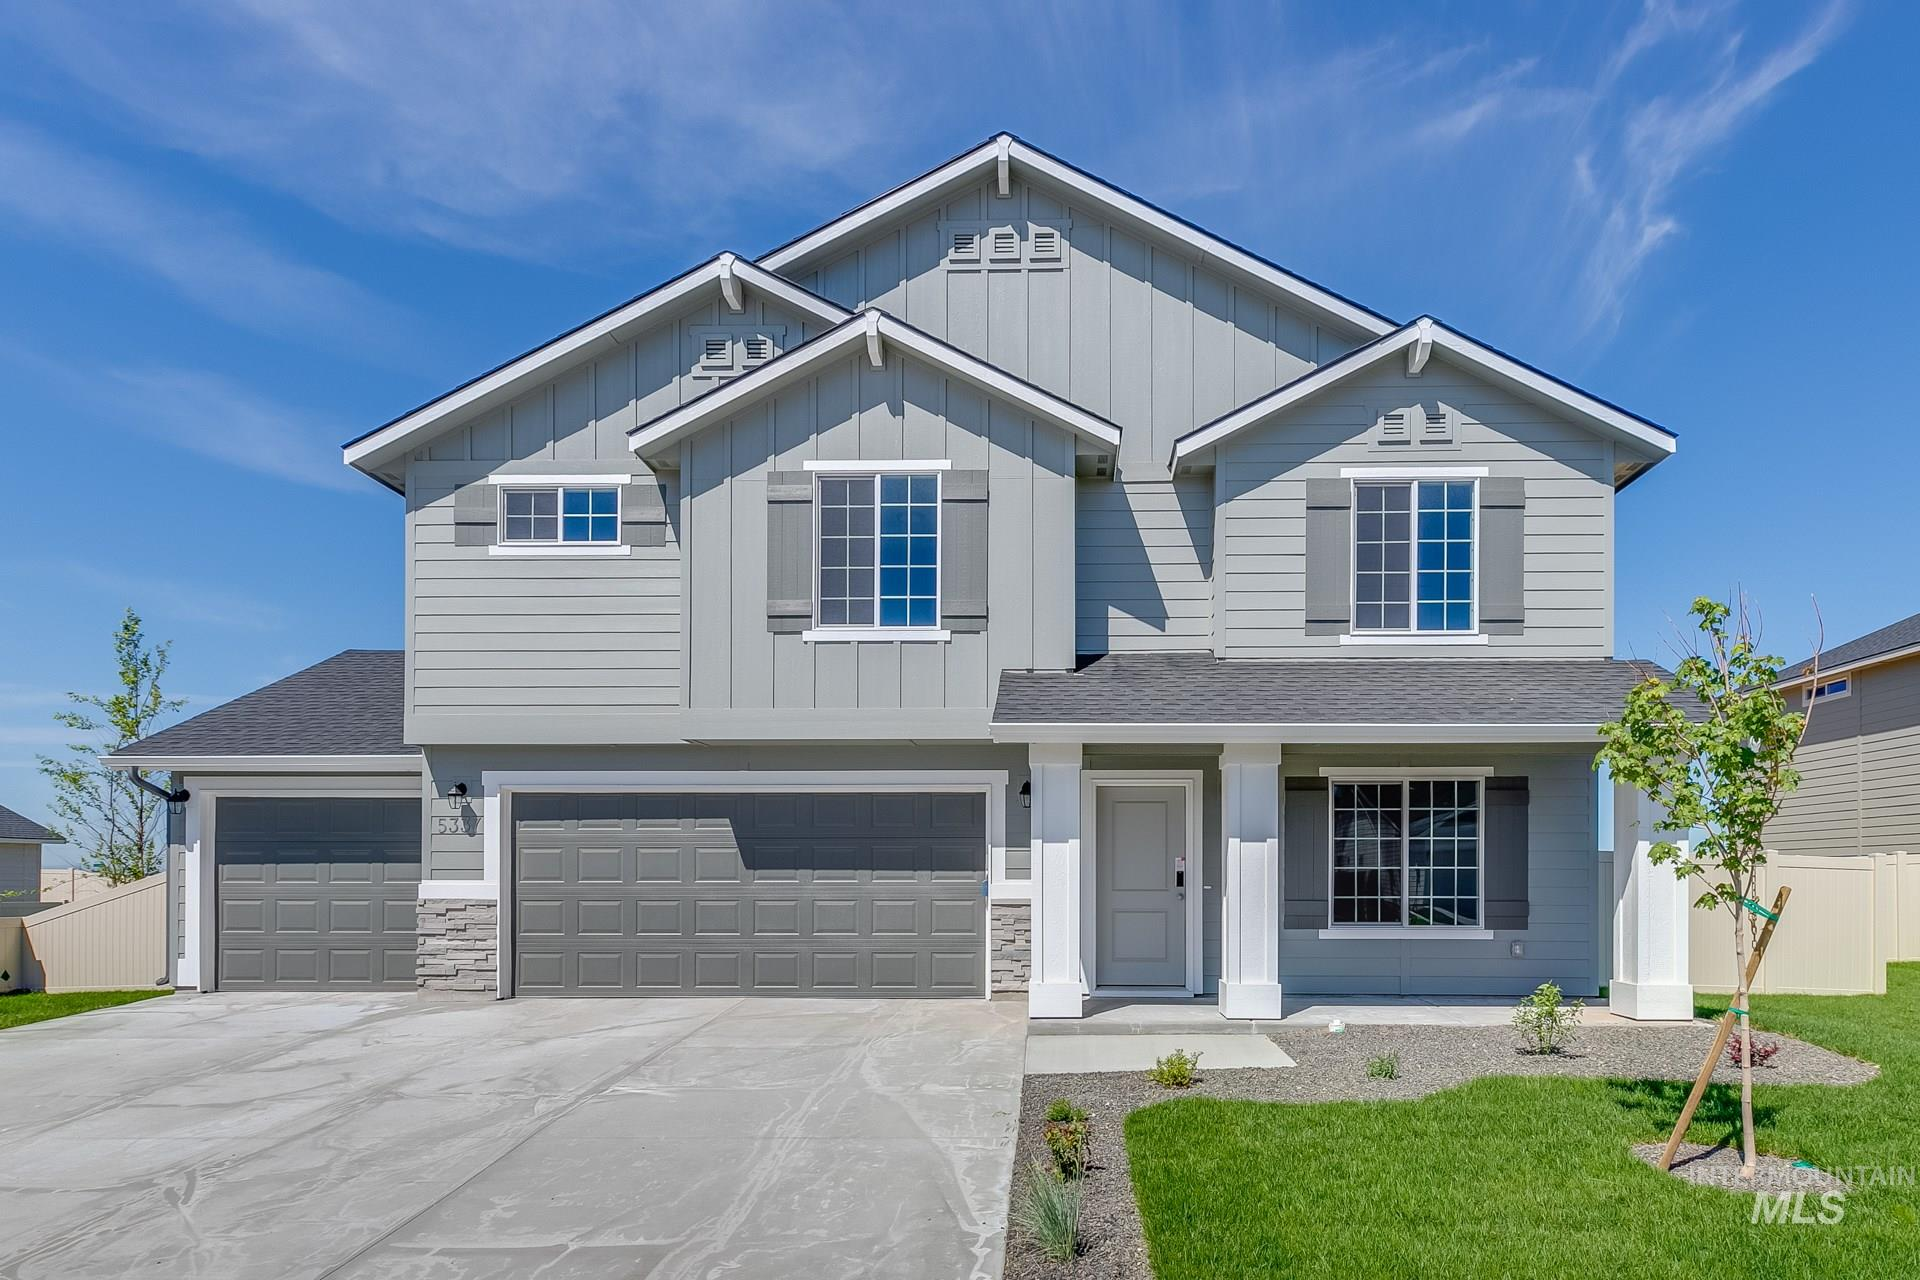 5337 N Willowside Ave, Meridian, Idaho 83646, 4 Bedrooms, 2.5 Bathrooms, Residential For Sale, Price $386,054, 98755054